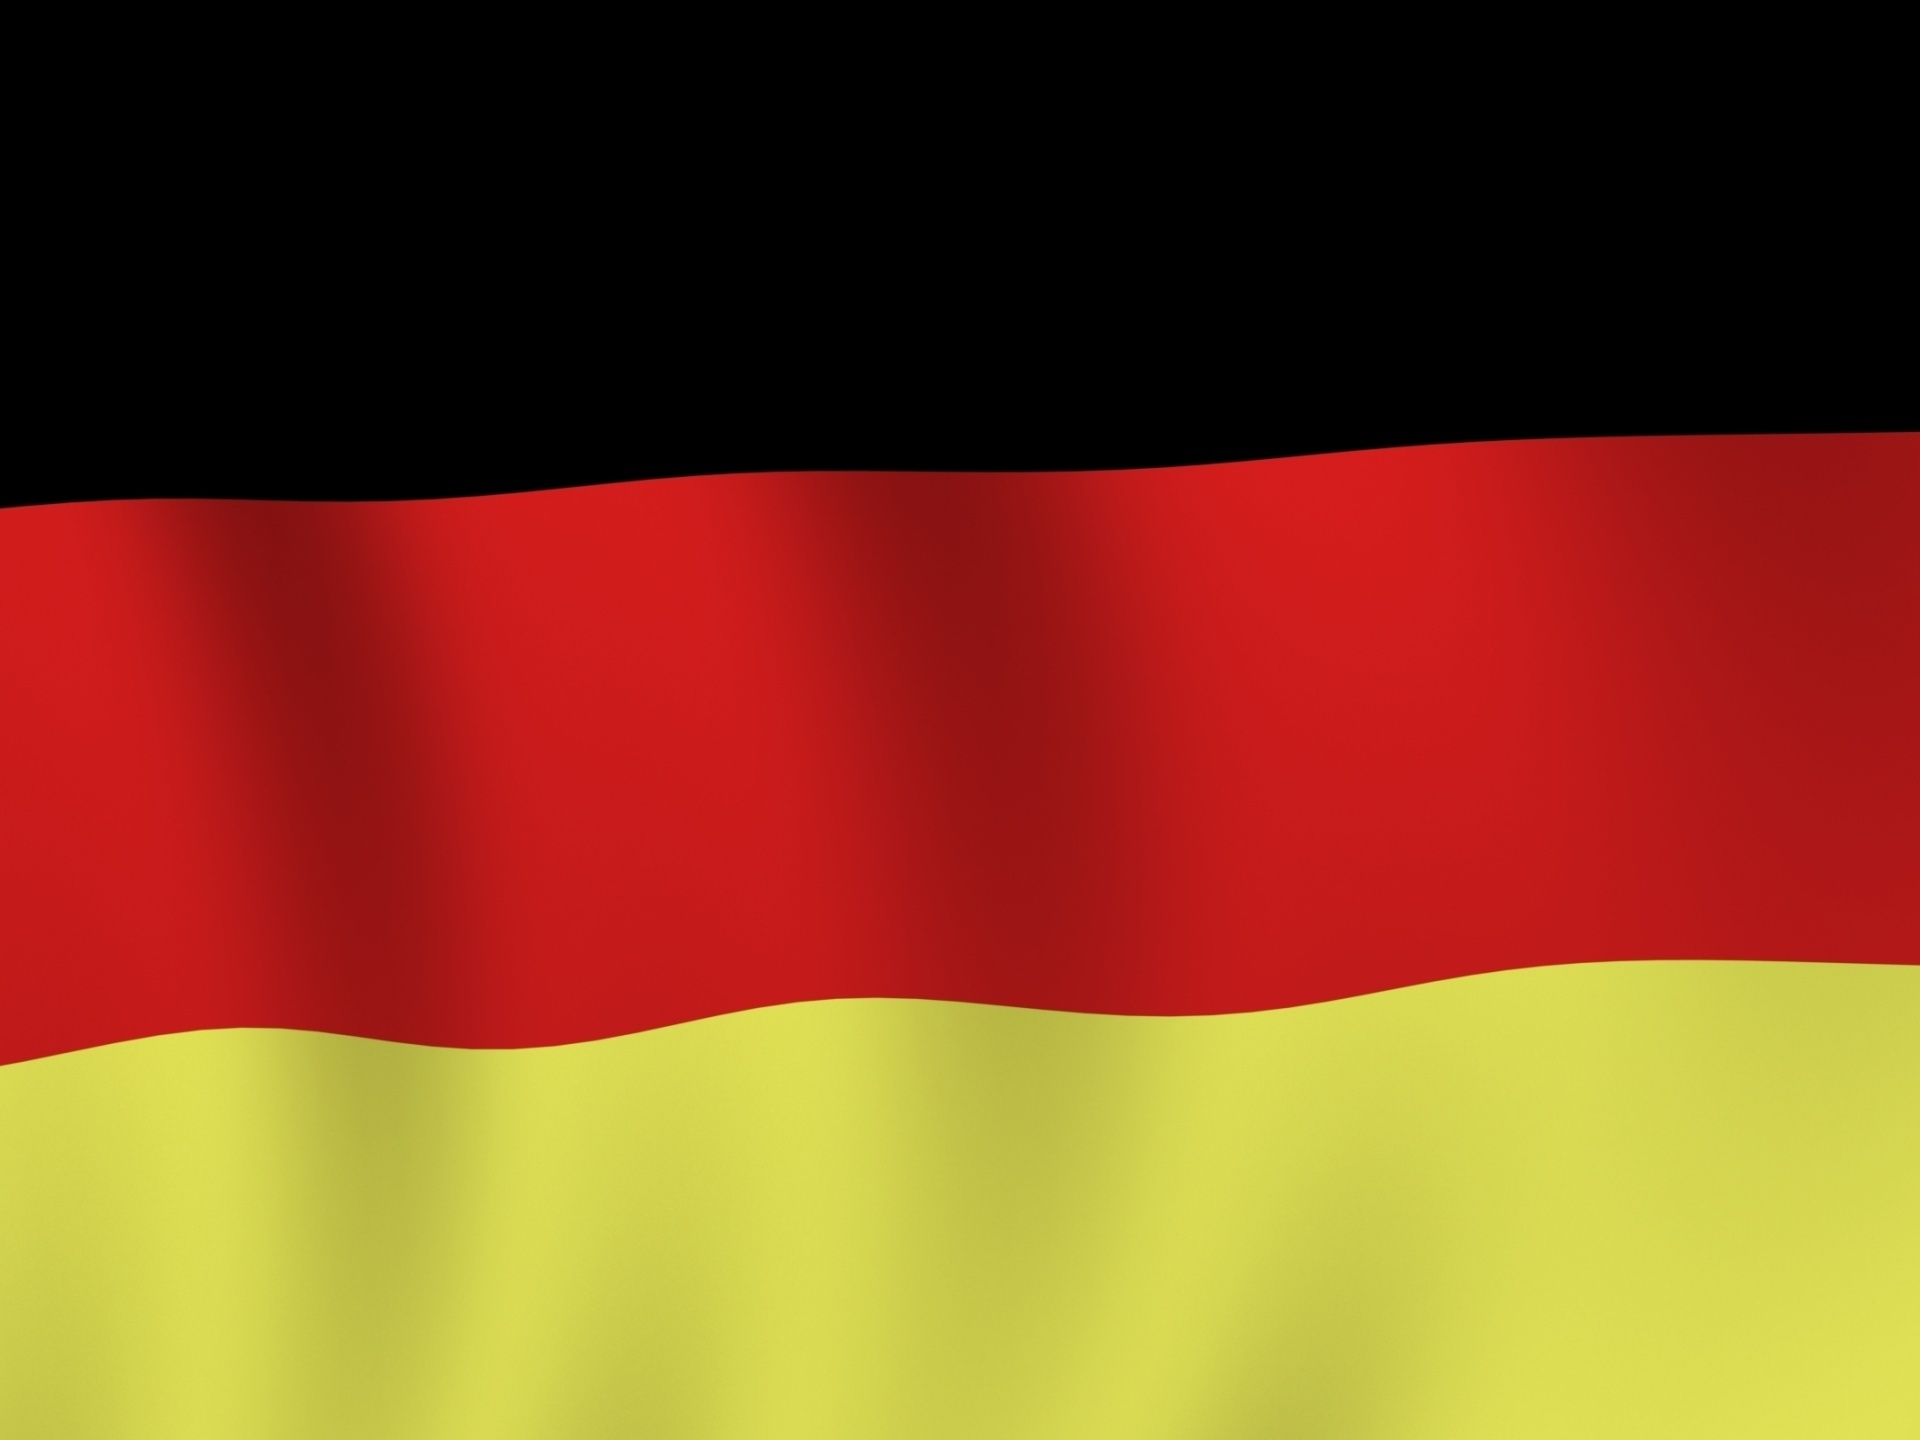 Pin German flag wallpaper wallpapers hd for free 1920x1440